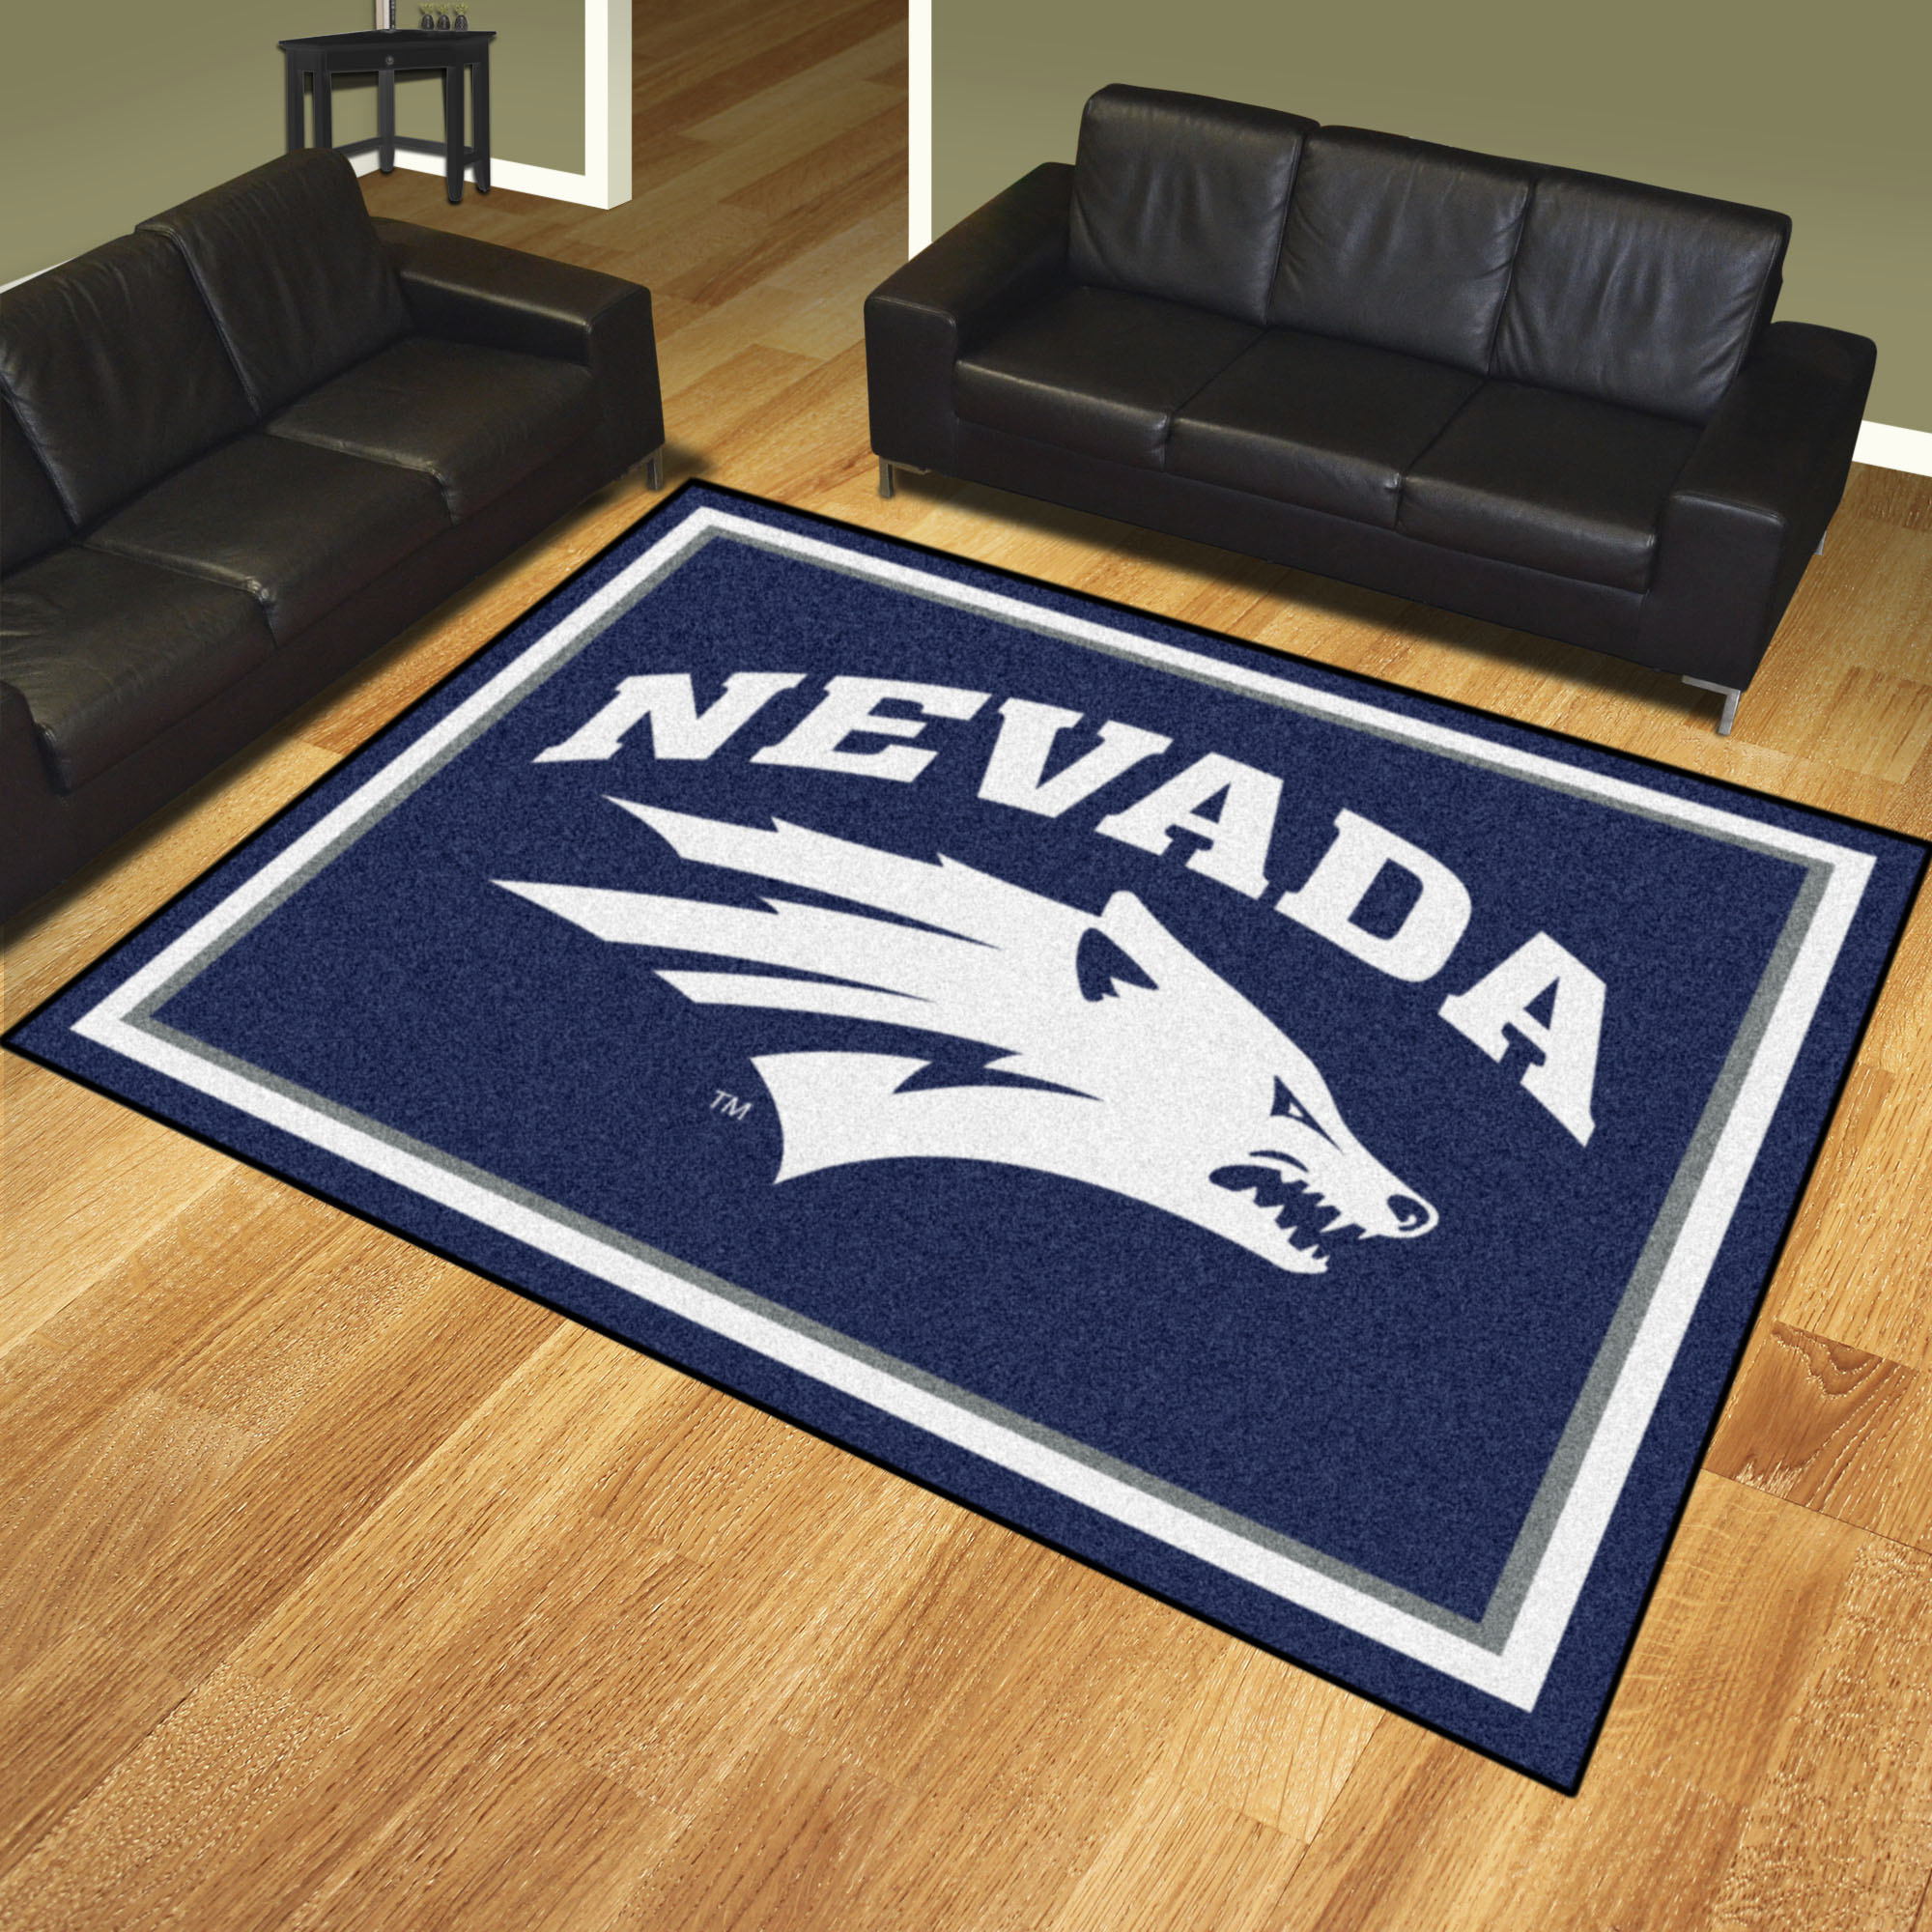 Nevada University Wolf Pack Area Rug – 8 x 10